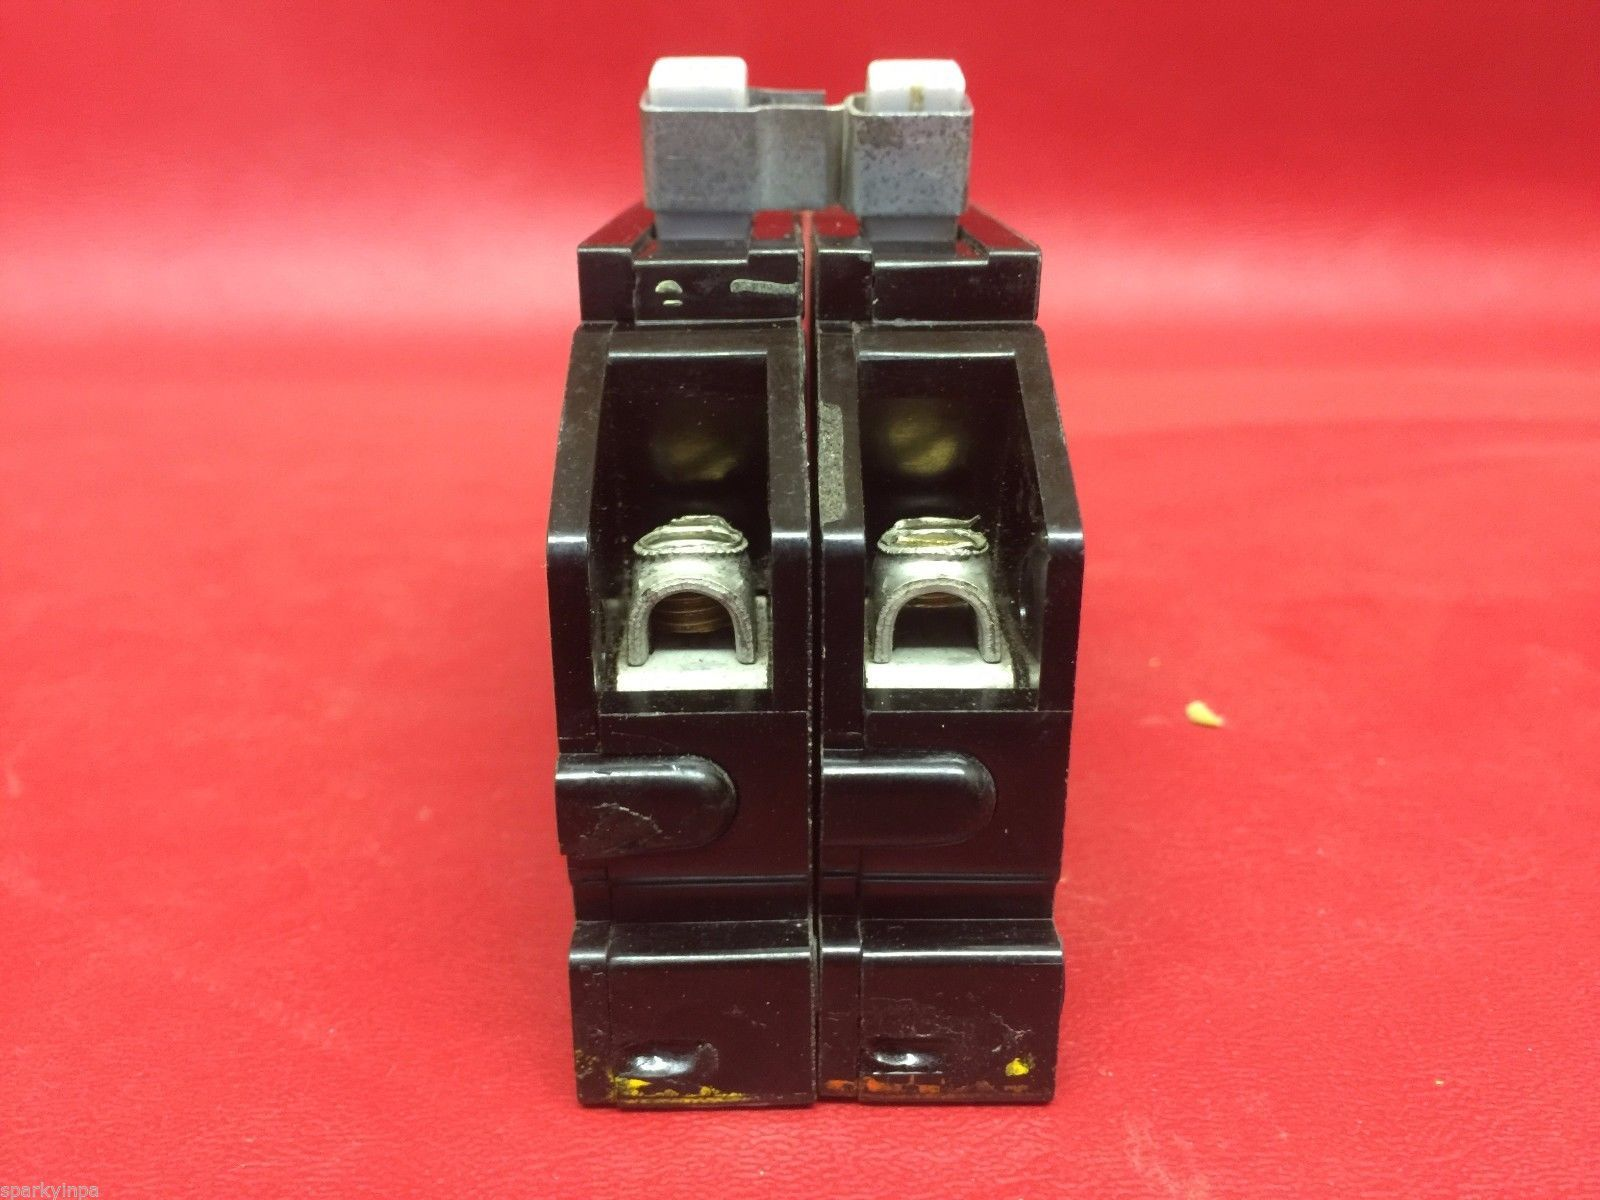 40a zinsco breakers 40 amp 2 - 1 pole with tie clips